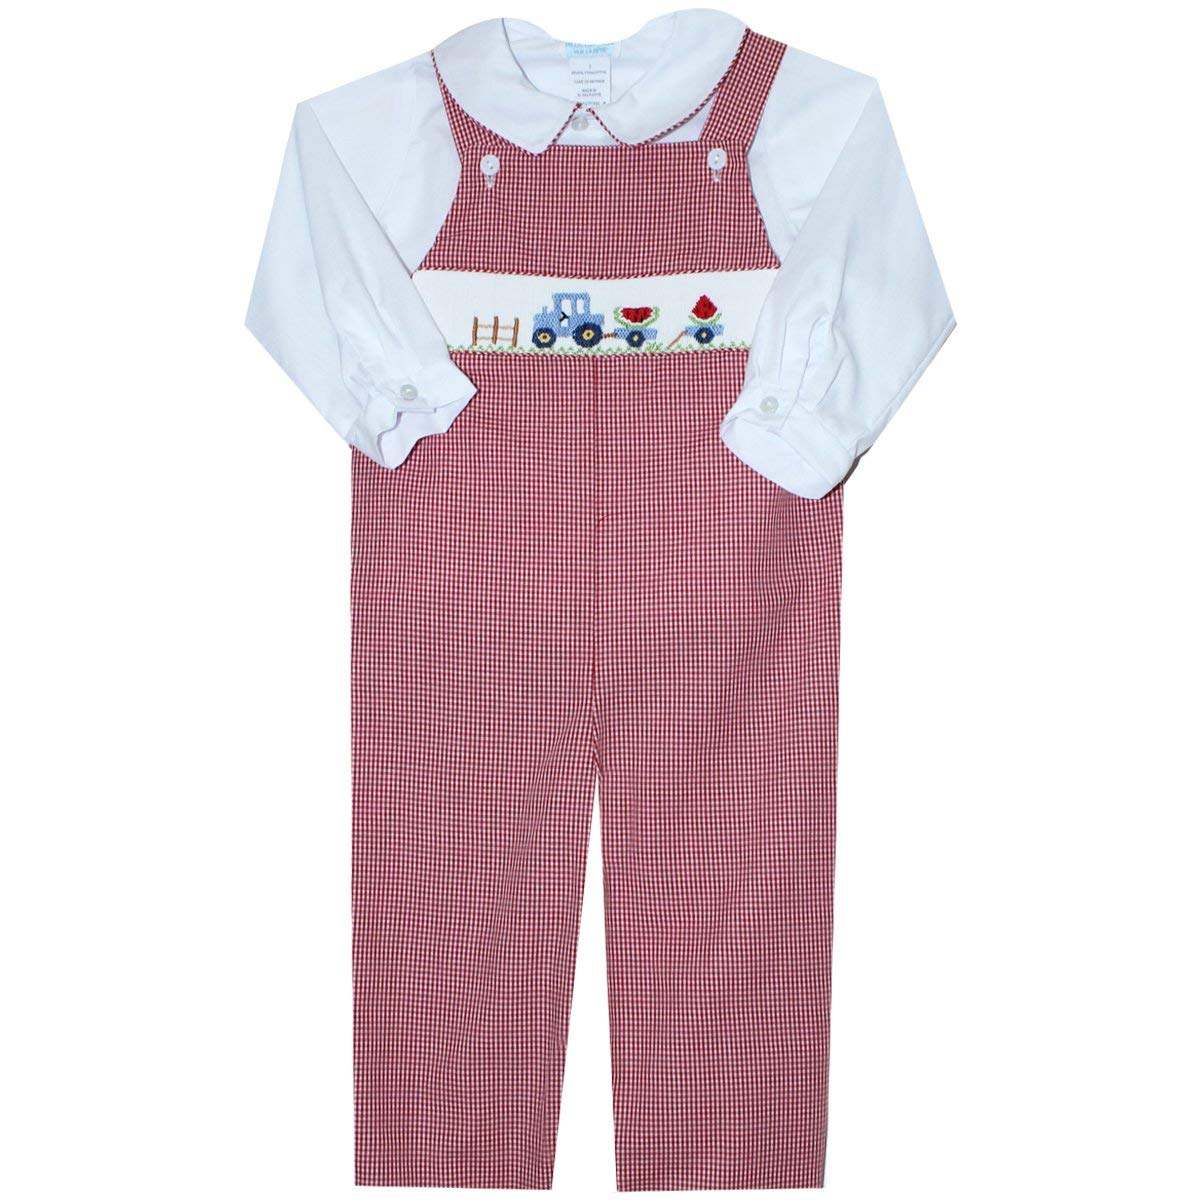 Tractor Smocked Red Check Long Sleeve Overall and Shirt